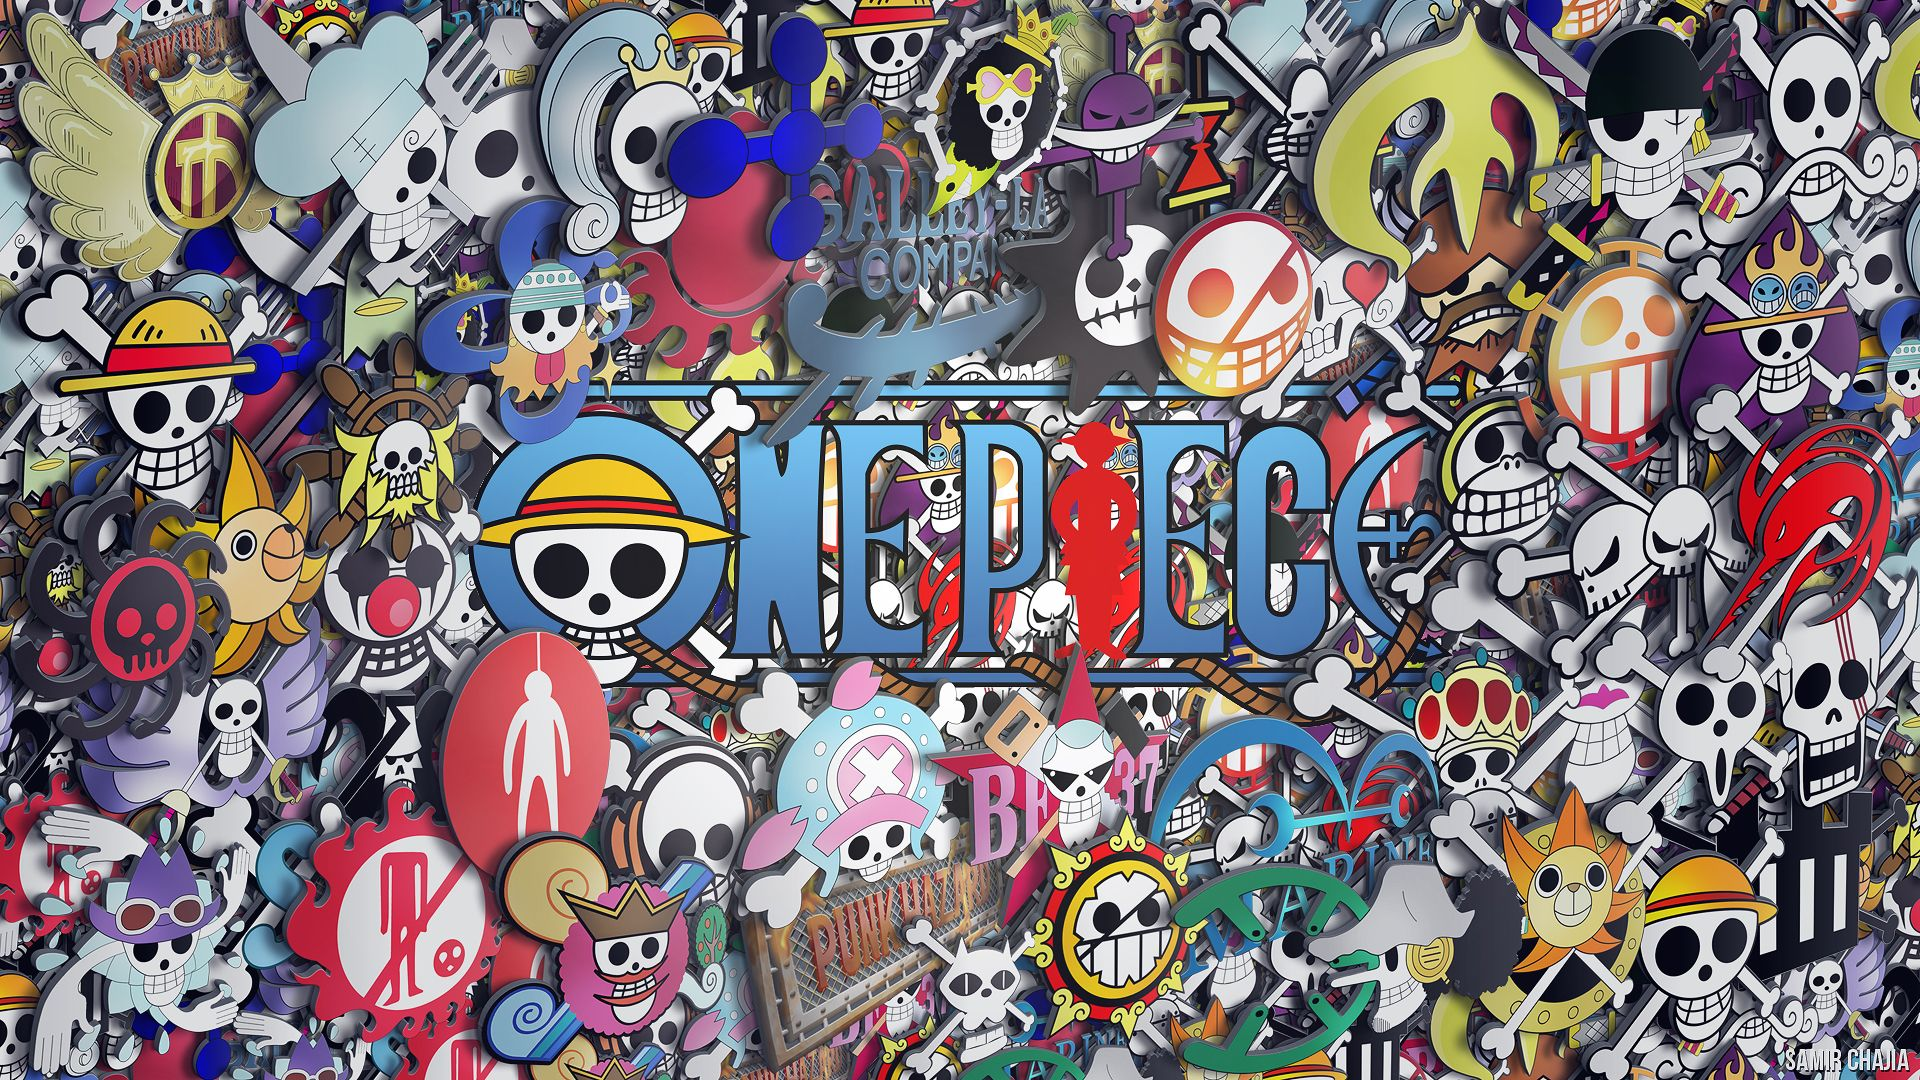 One Piece Hd Wallpaper 1920x1080 One Piece Wallpaper Iphone One Piece Logo Character Wallpaper